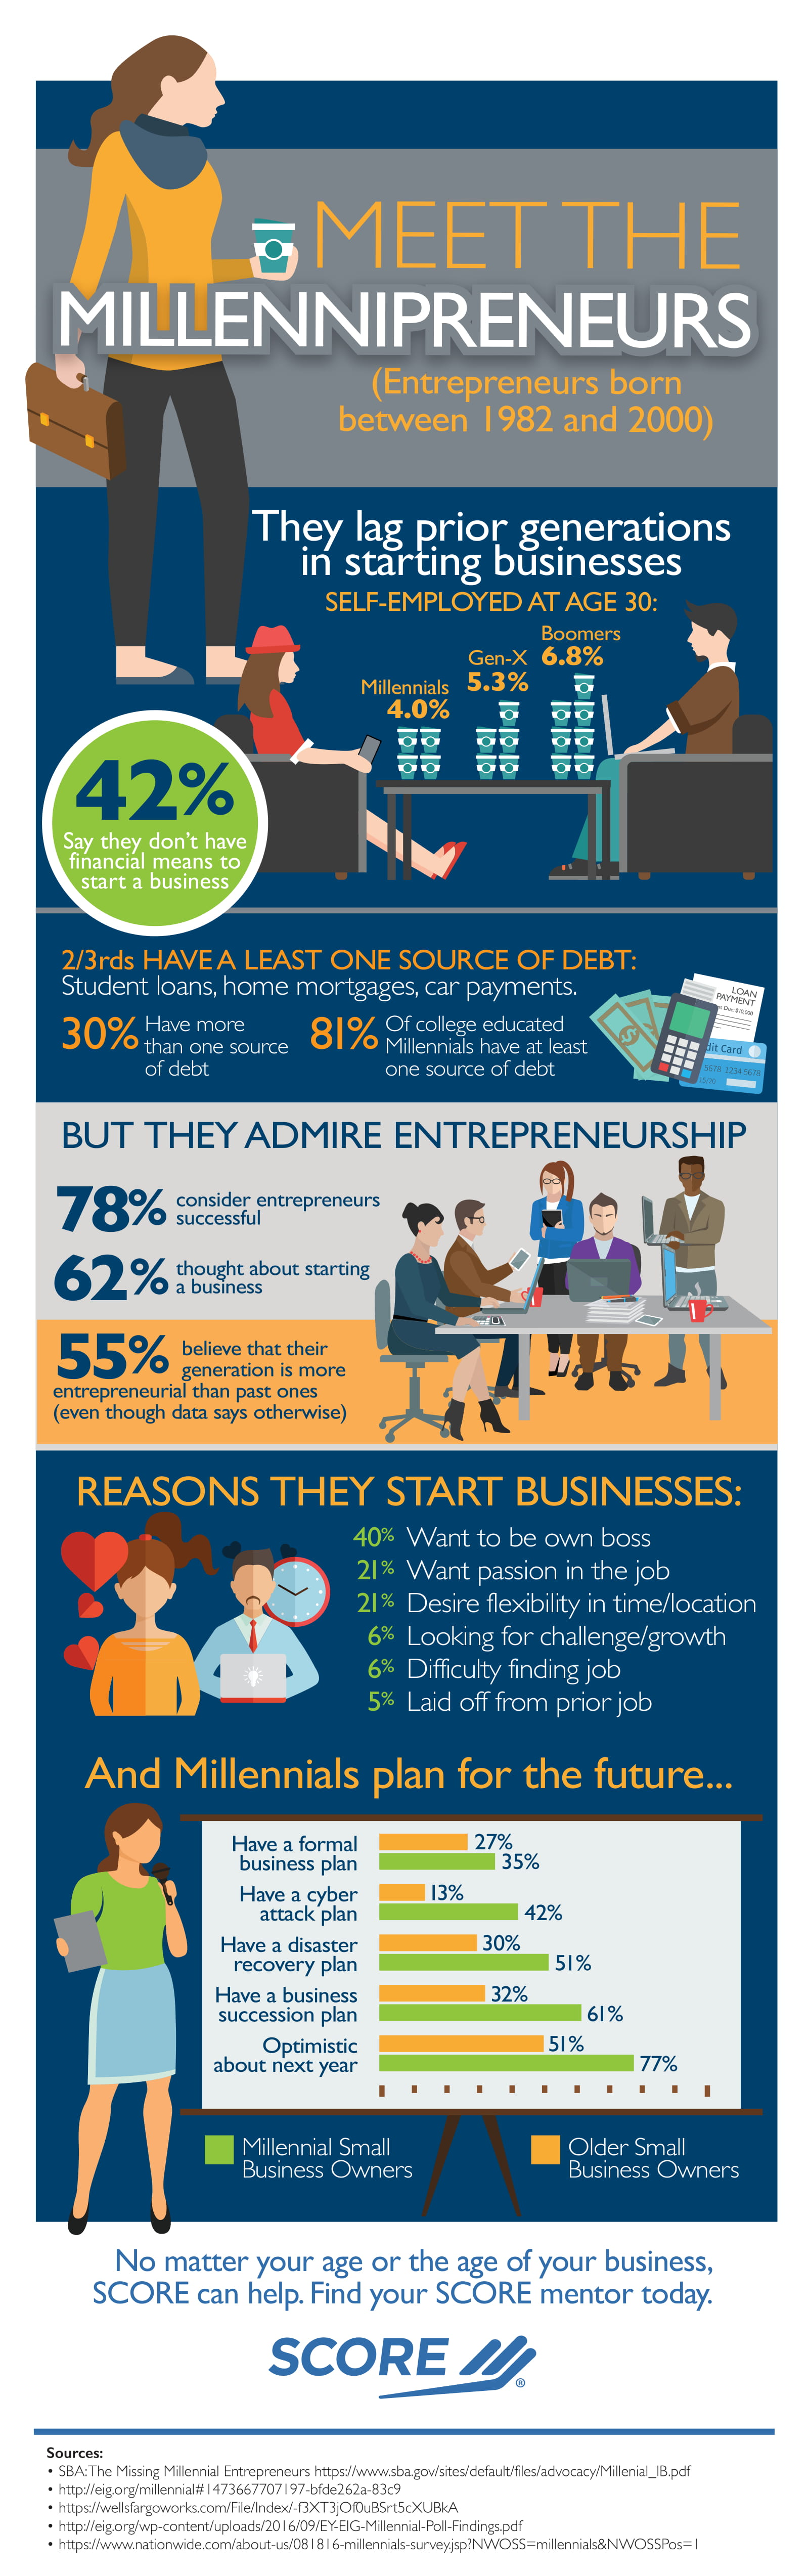 Inside the Millennipreneurs Mind - Infographic